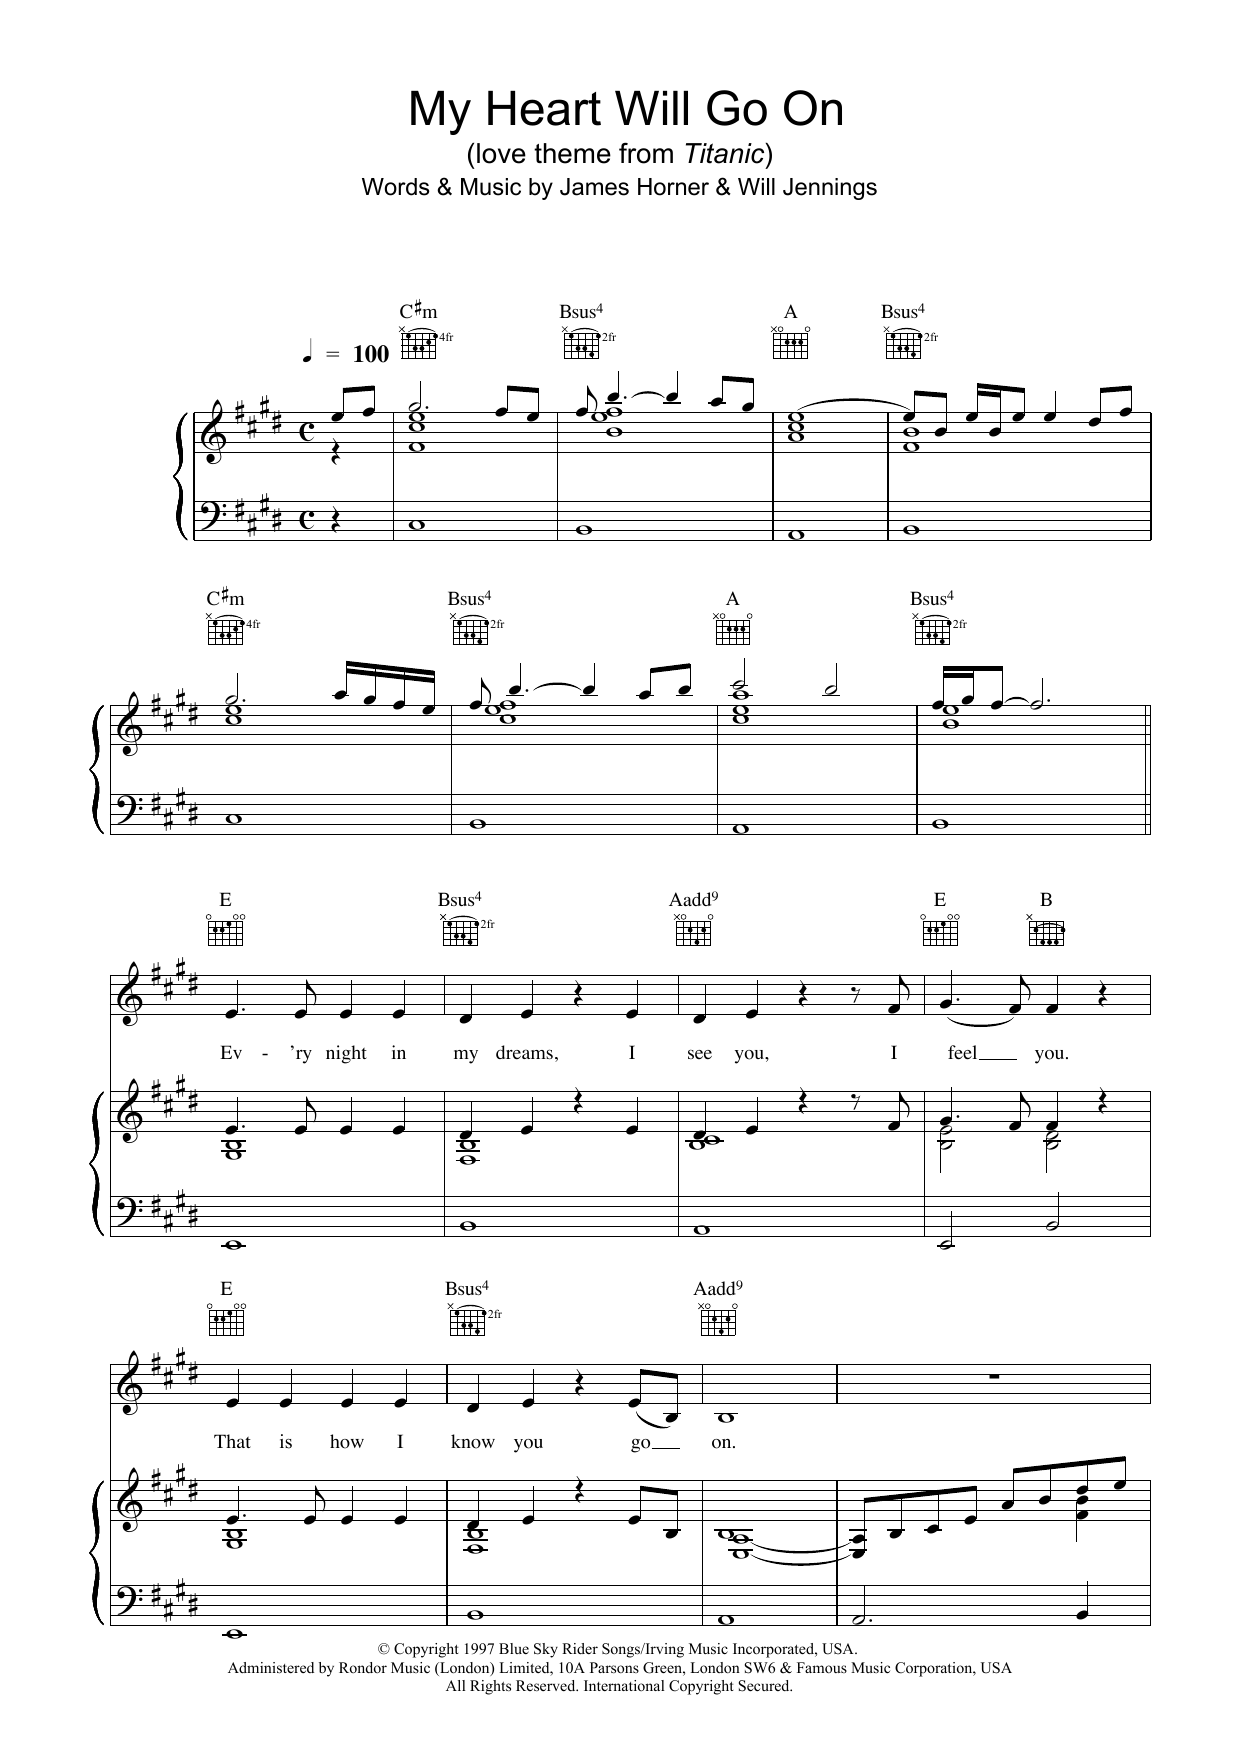 Violin violin chords my heart will go on : My Heart Will Go On (Love Theme from Titanic) | Sheet Music Direct